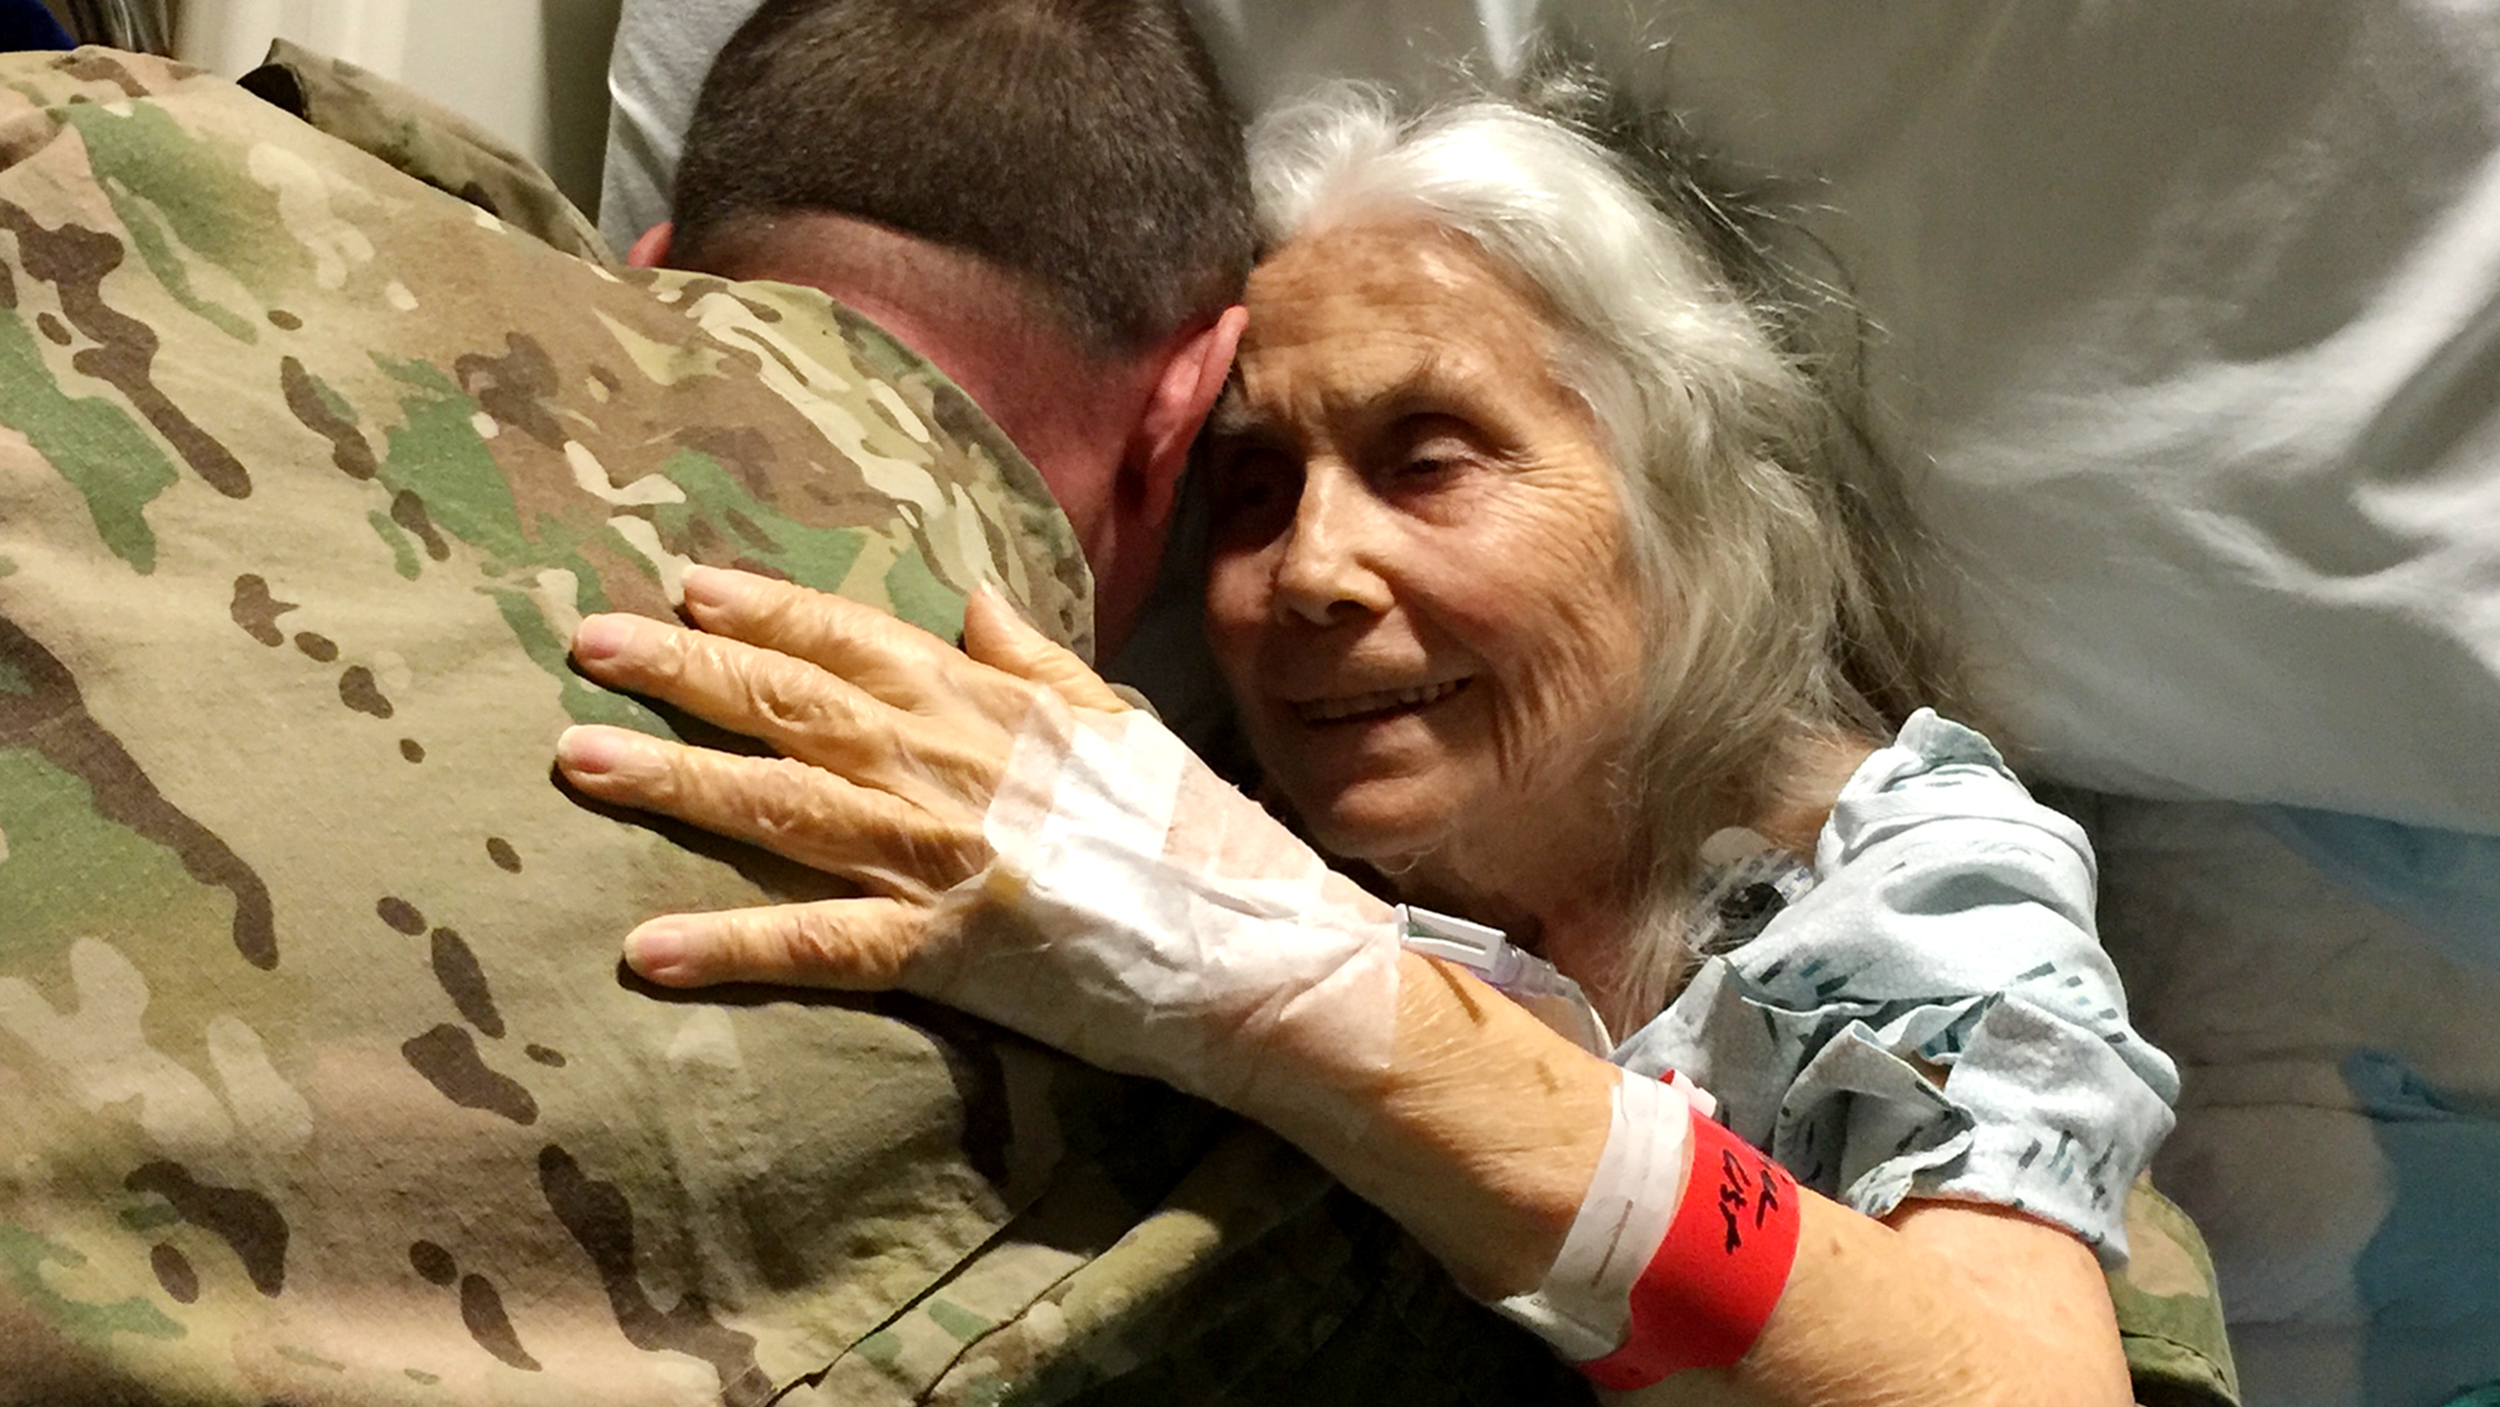 Beautiful Hug Lady Has Farewelled Soldiers For Years And